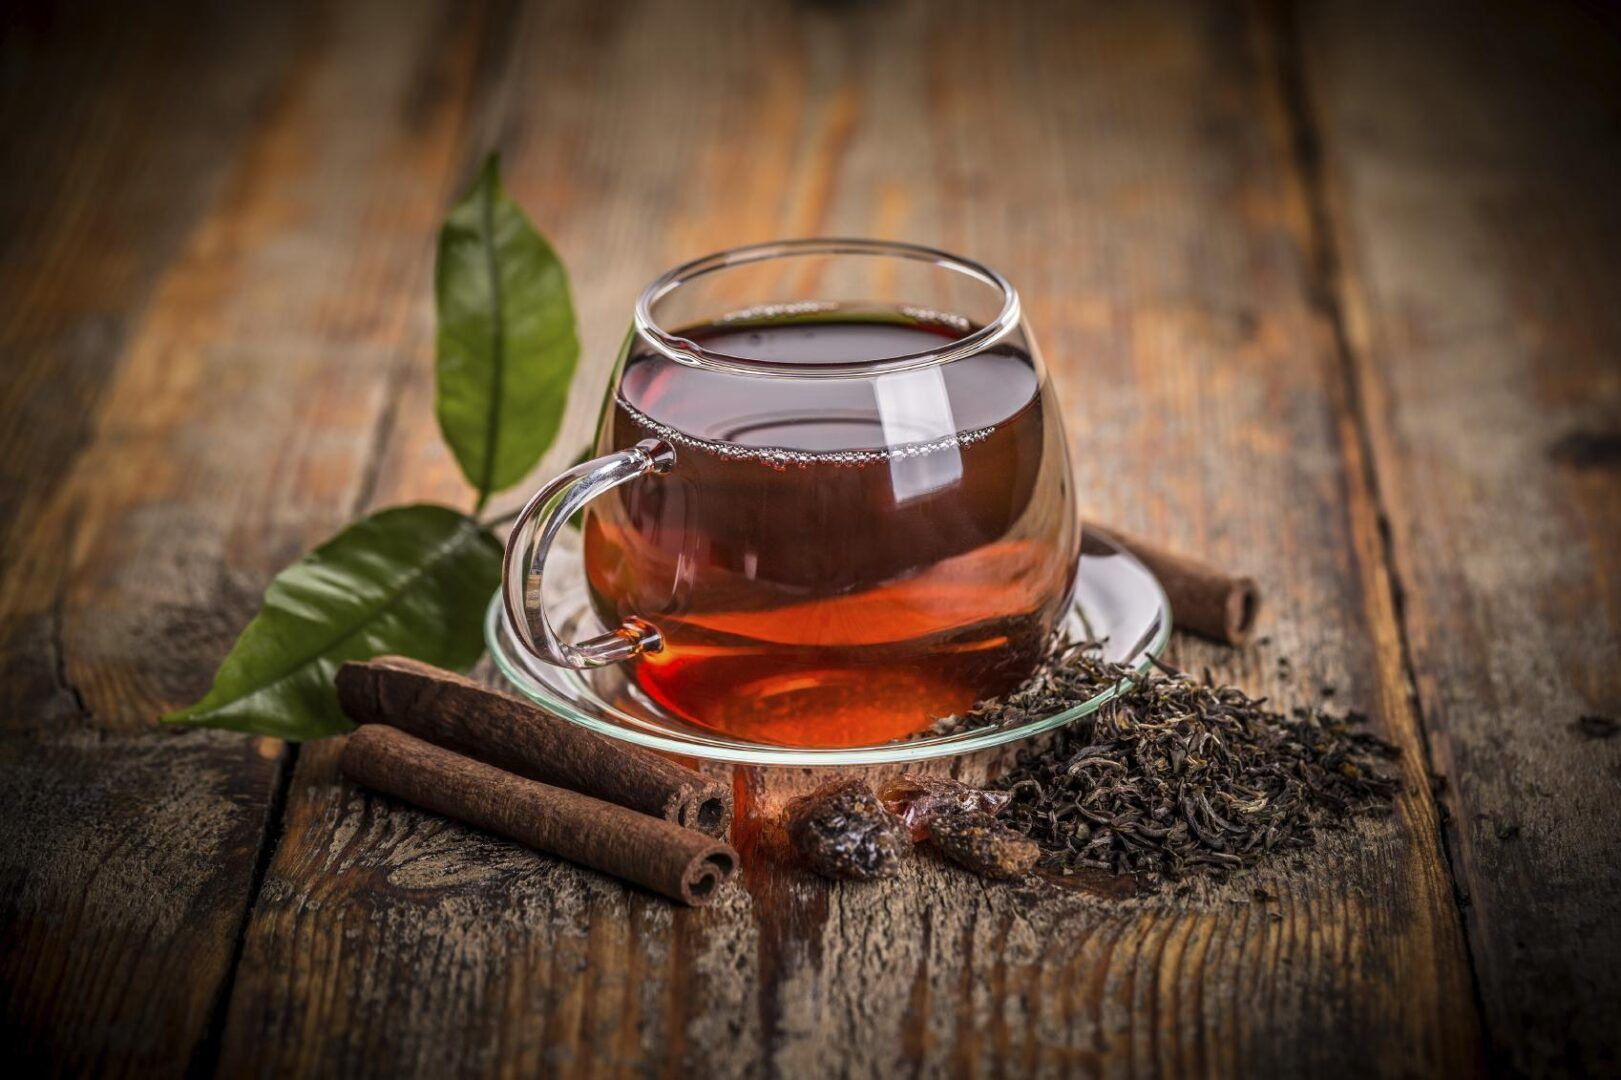 What nutrients can be found in black tea?